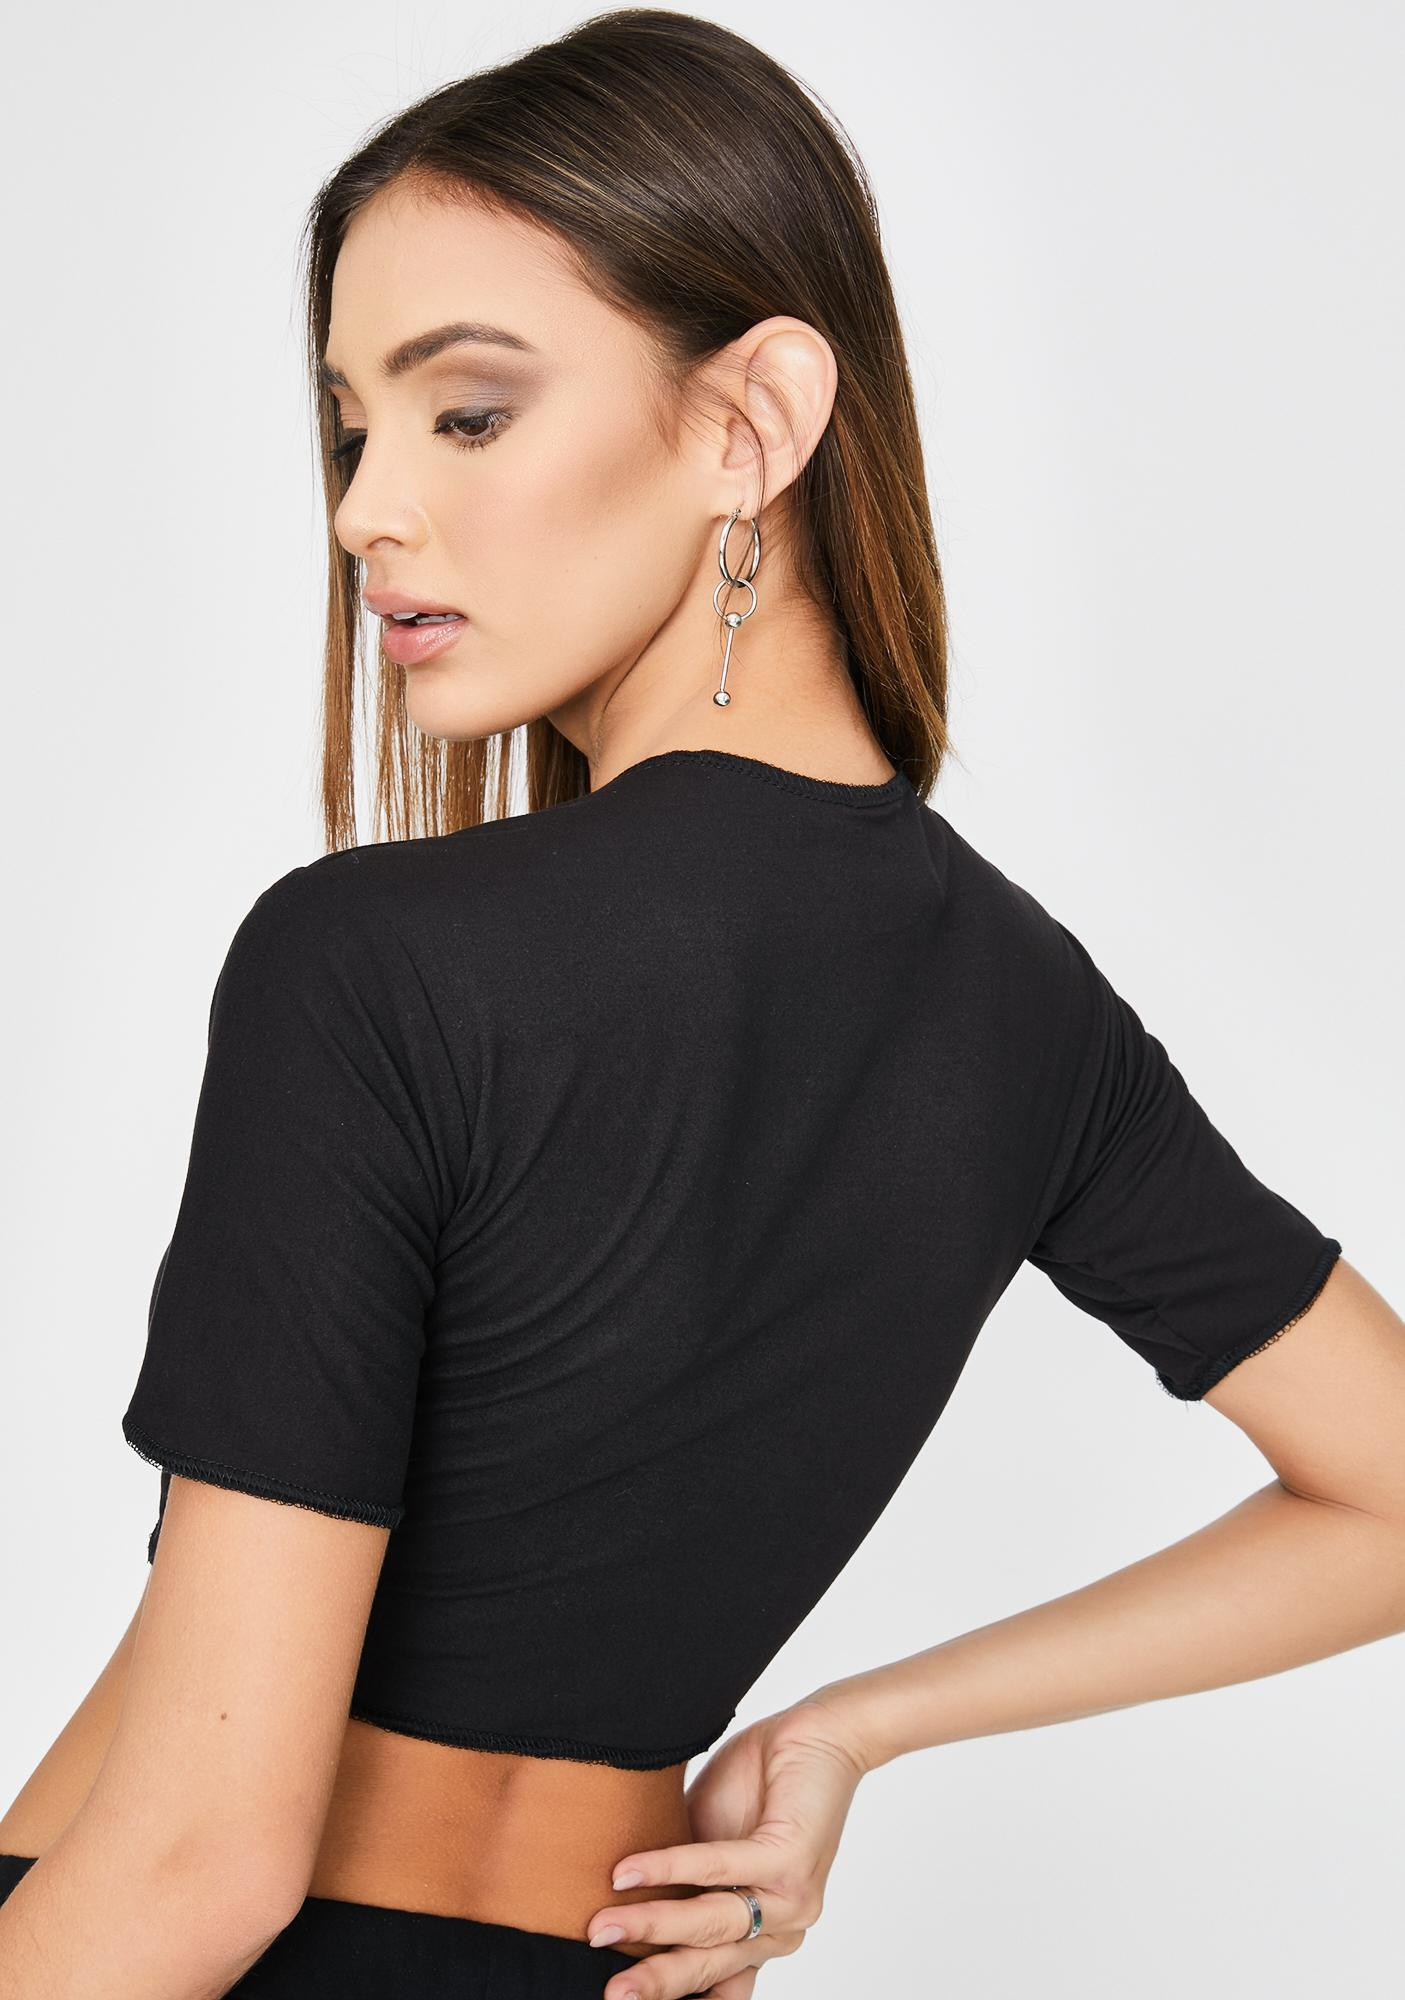 Riccetti Clothing Random Cord Crop Top